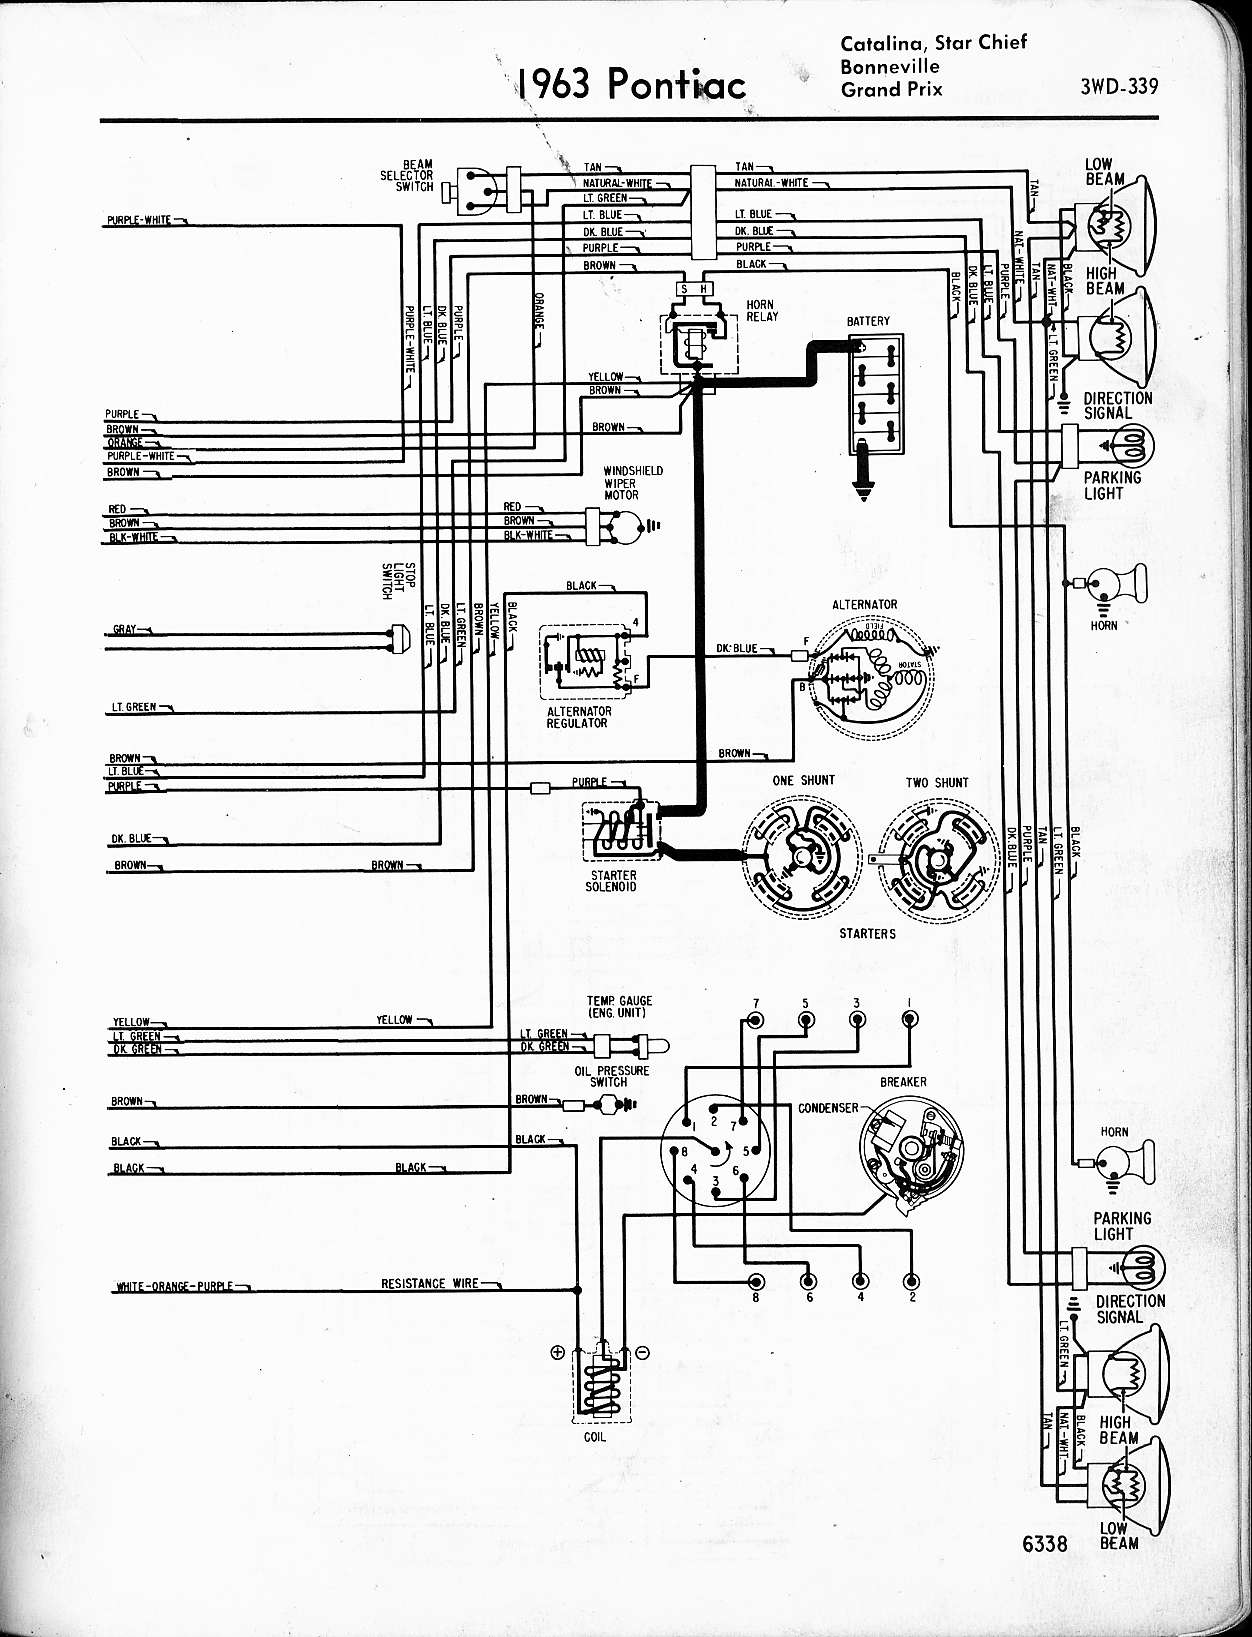 wallace racing wiring diagrams rh wallaceracing com 2005 Pontiac Grand Prix Wiring Diagrams 2000 Pontiac Grand Prix Engine Diagram